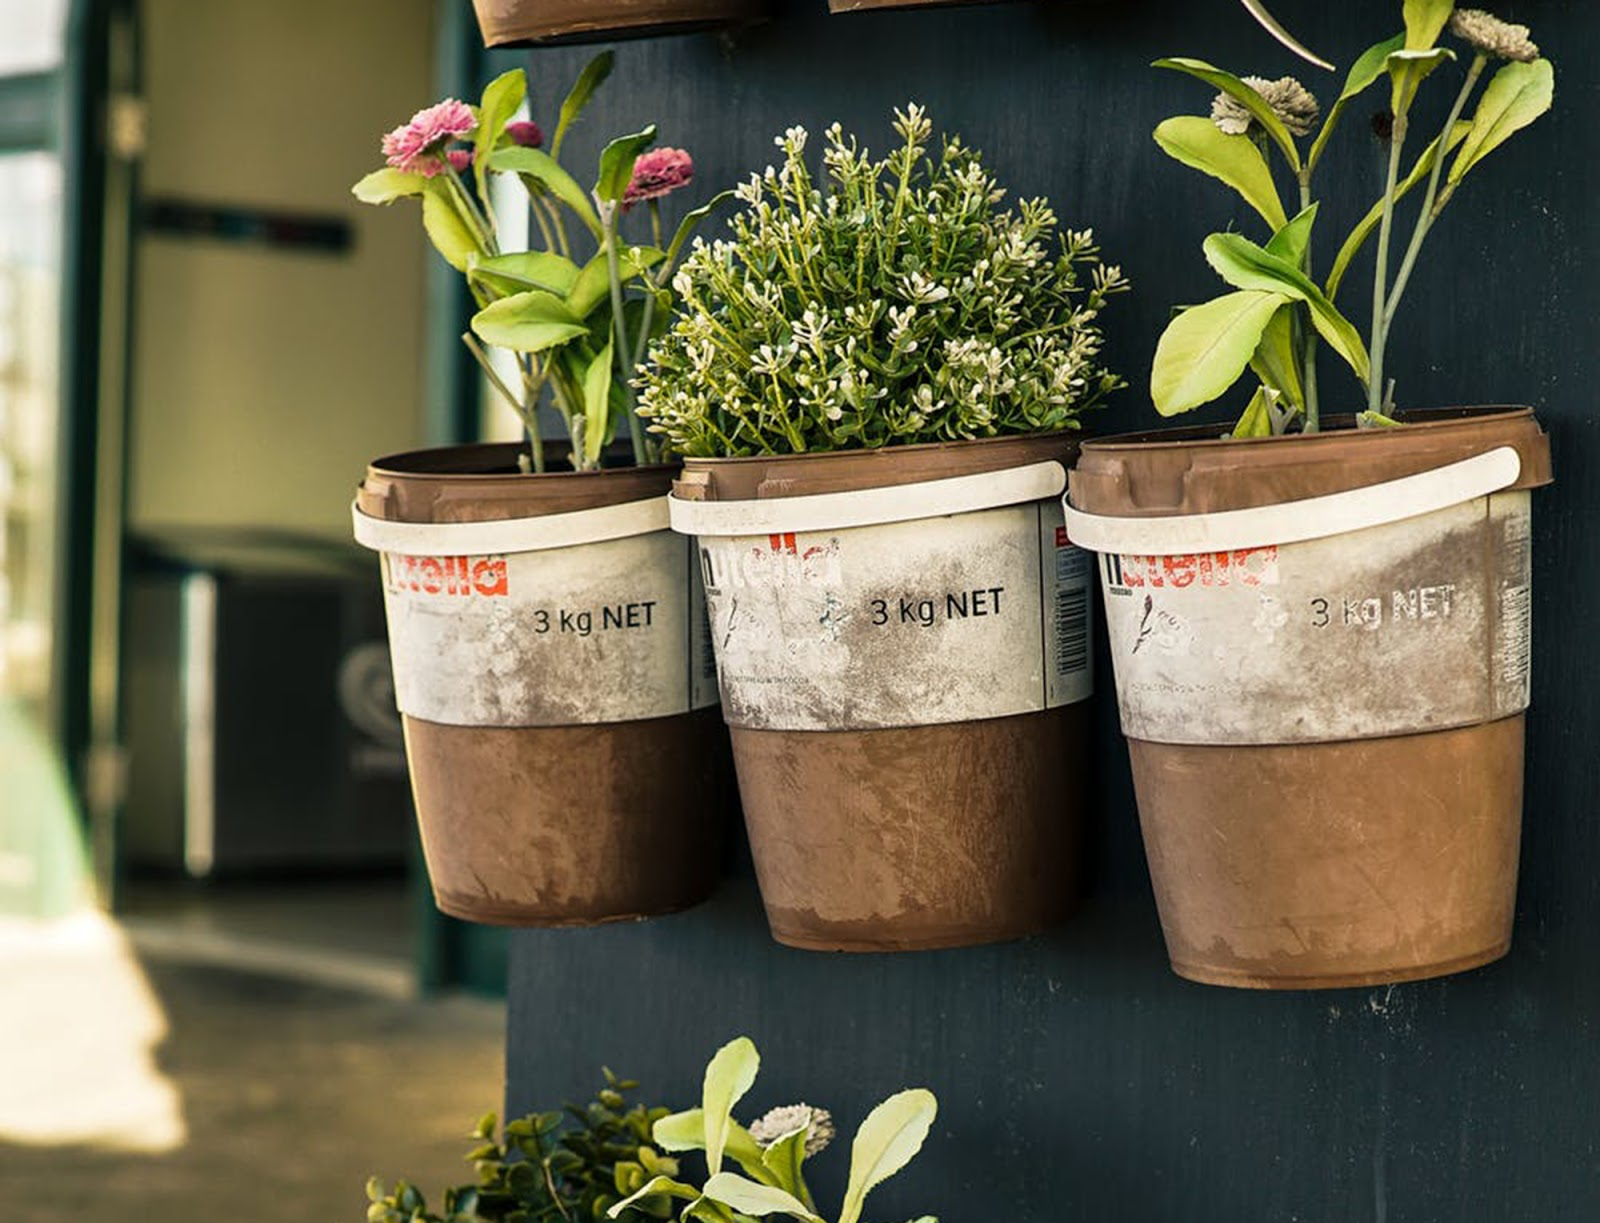 Glorious Gardening: Why I Love Growing Plants From Seeds